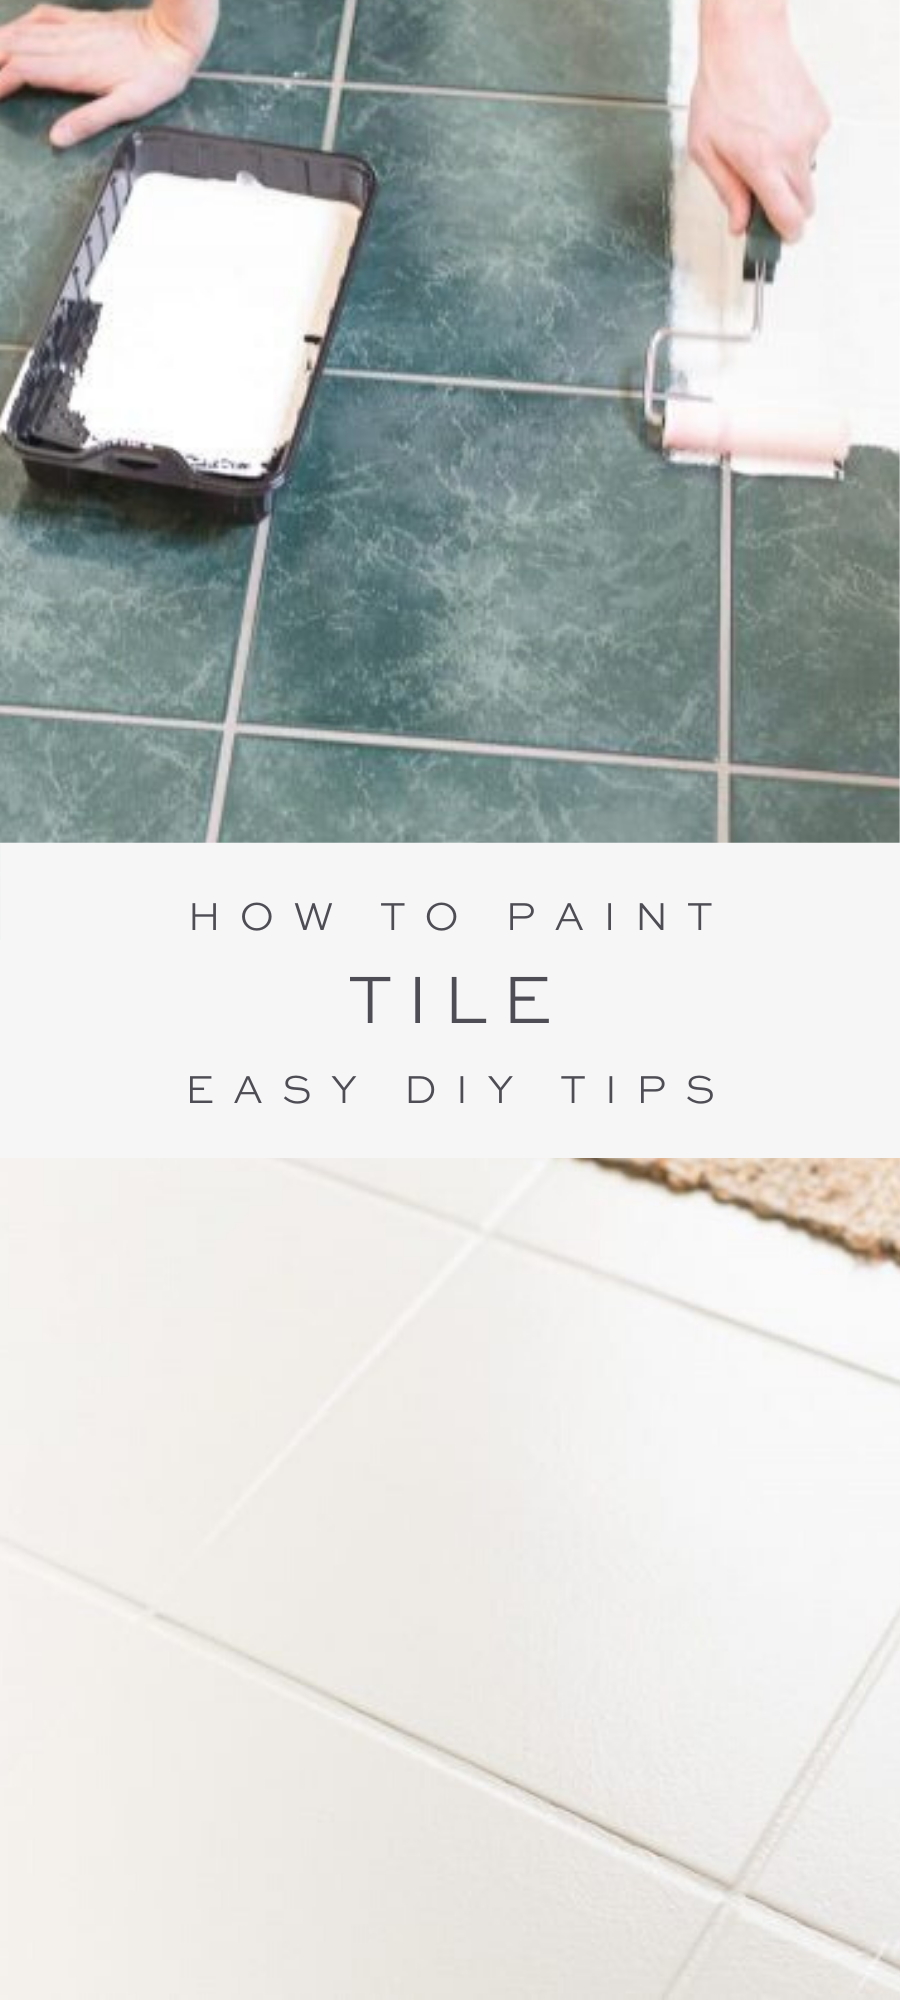 Can You Paint Ceramic Tile Yes And I M Sharing Everything You Need To Know About Tile Paint Including Where To Pur In 2020 Painting Tile Painting Ceramic Tiles Tiles